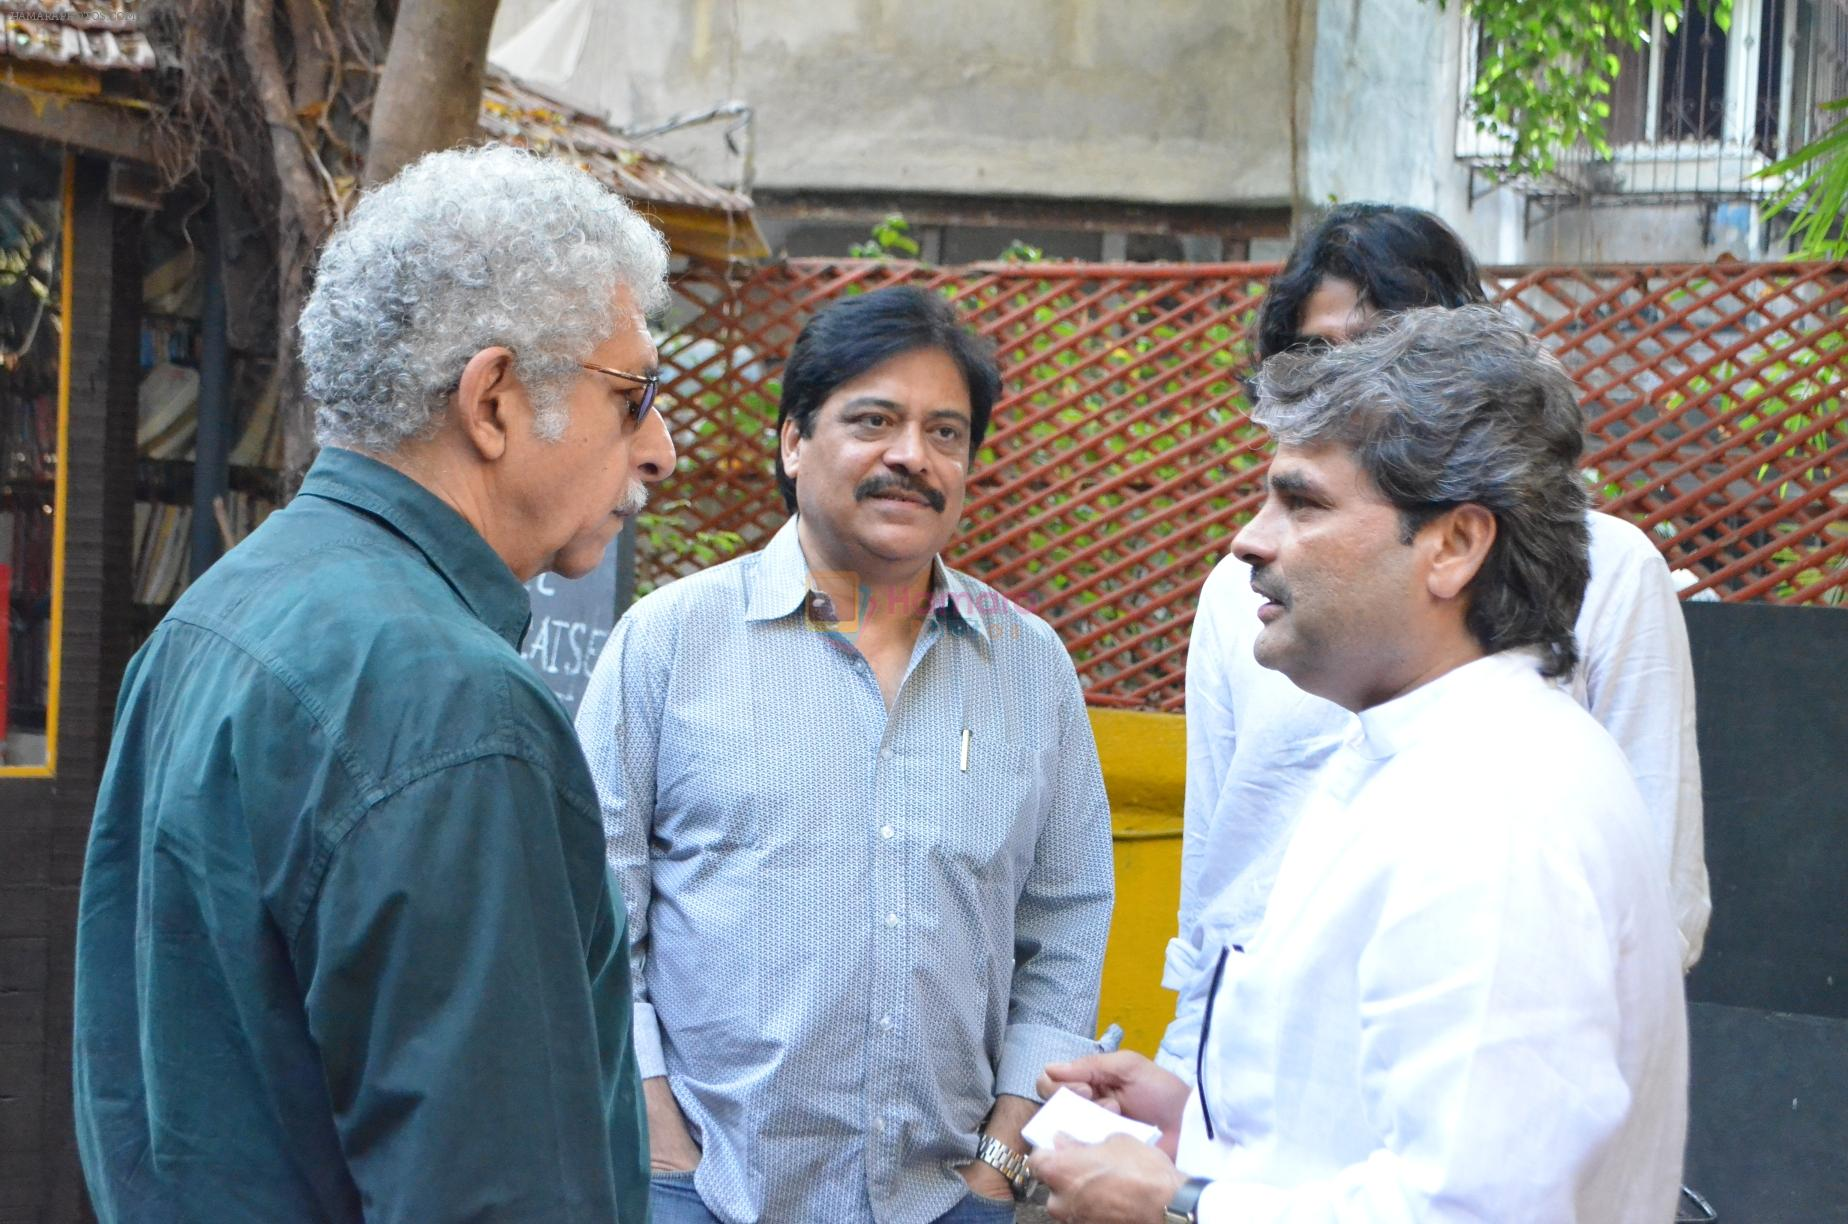 Naseeruddin Shah,Salim Arif and Vishal Bhardwaj at Salim Arif's 2 days show at prithvi theatre in Mumbai on 23rd Dec 2012